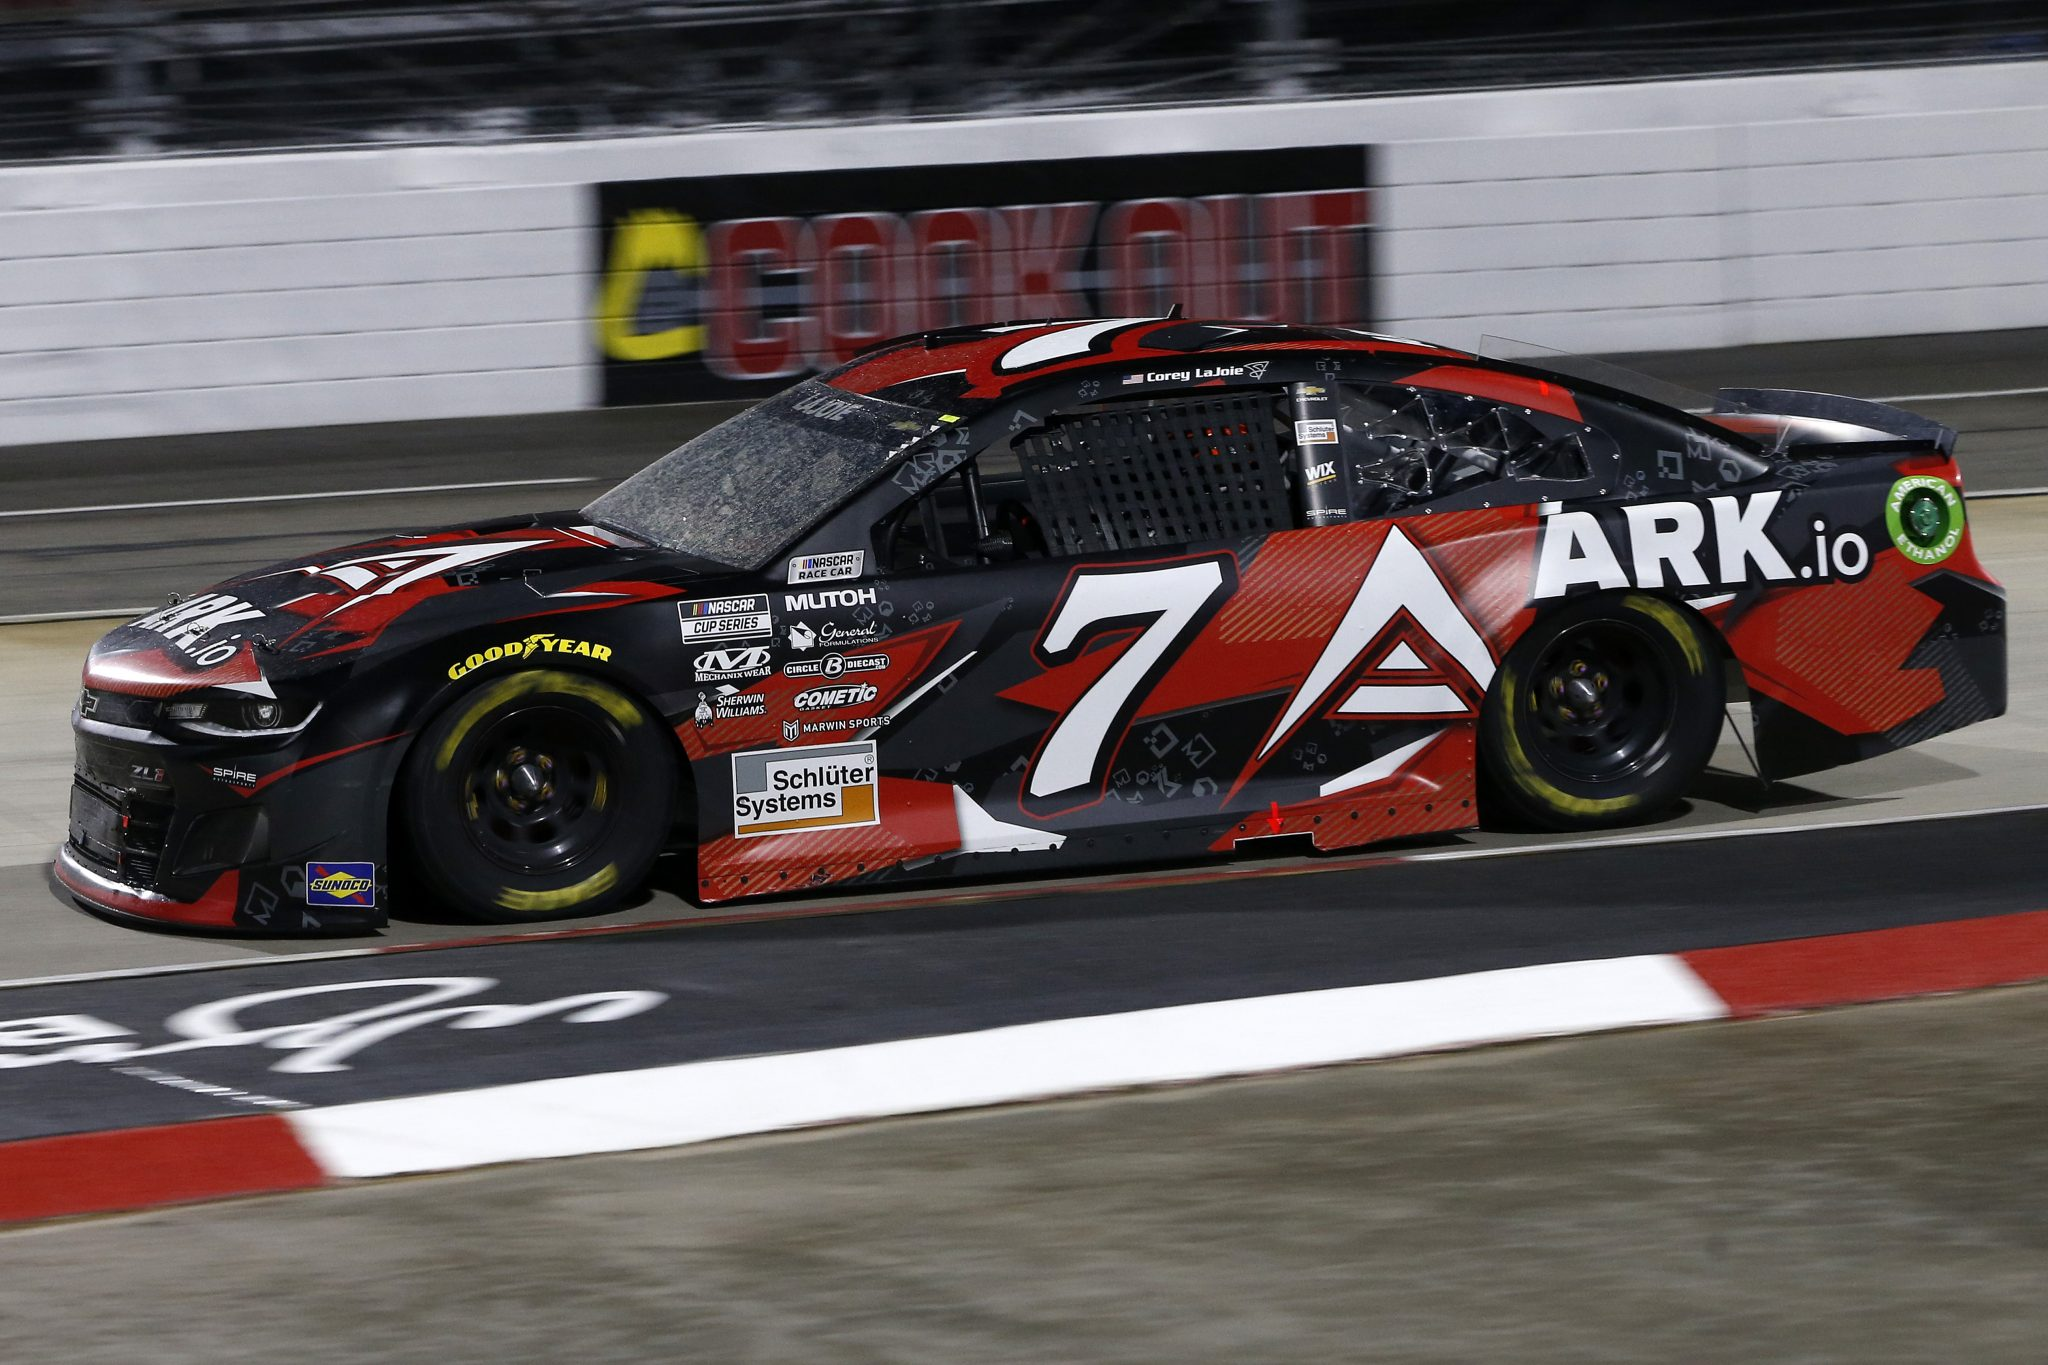 MARTINSVILLE, VIRGINIA - APRIL 10: Corey LaJoie, driver of the #7 ARK.io Chevrolet, drives during the NASCAR Cup Series Blue-Emu Maximum Pain Relief 500 at Martinsville Speedway on April 10, 2021 in Martinsville, Virginia. (Photo by Brian Lawdermilk/Getty Images) | Getty Images